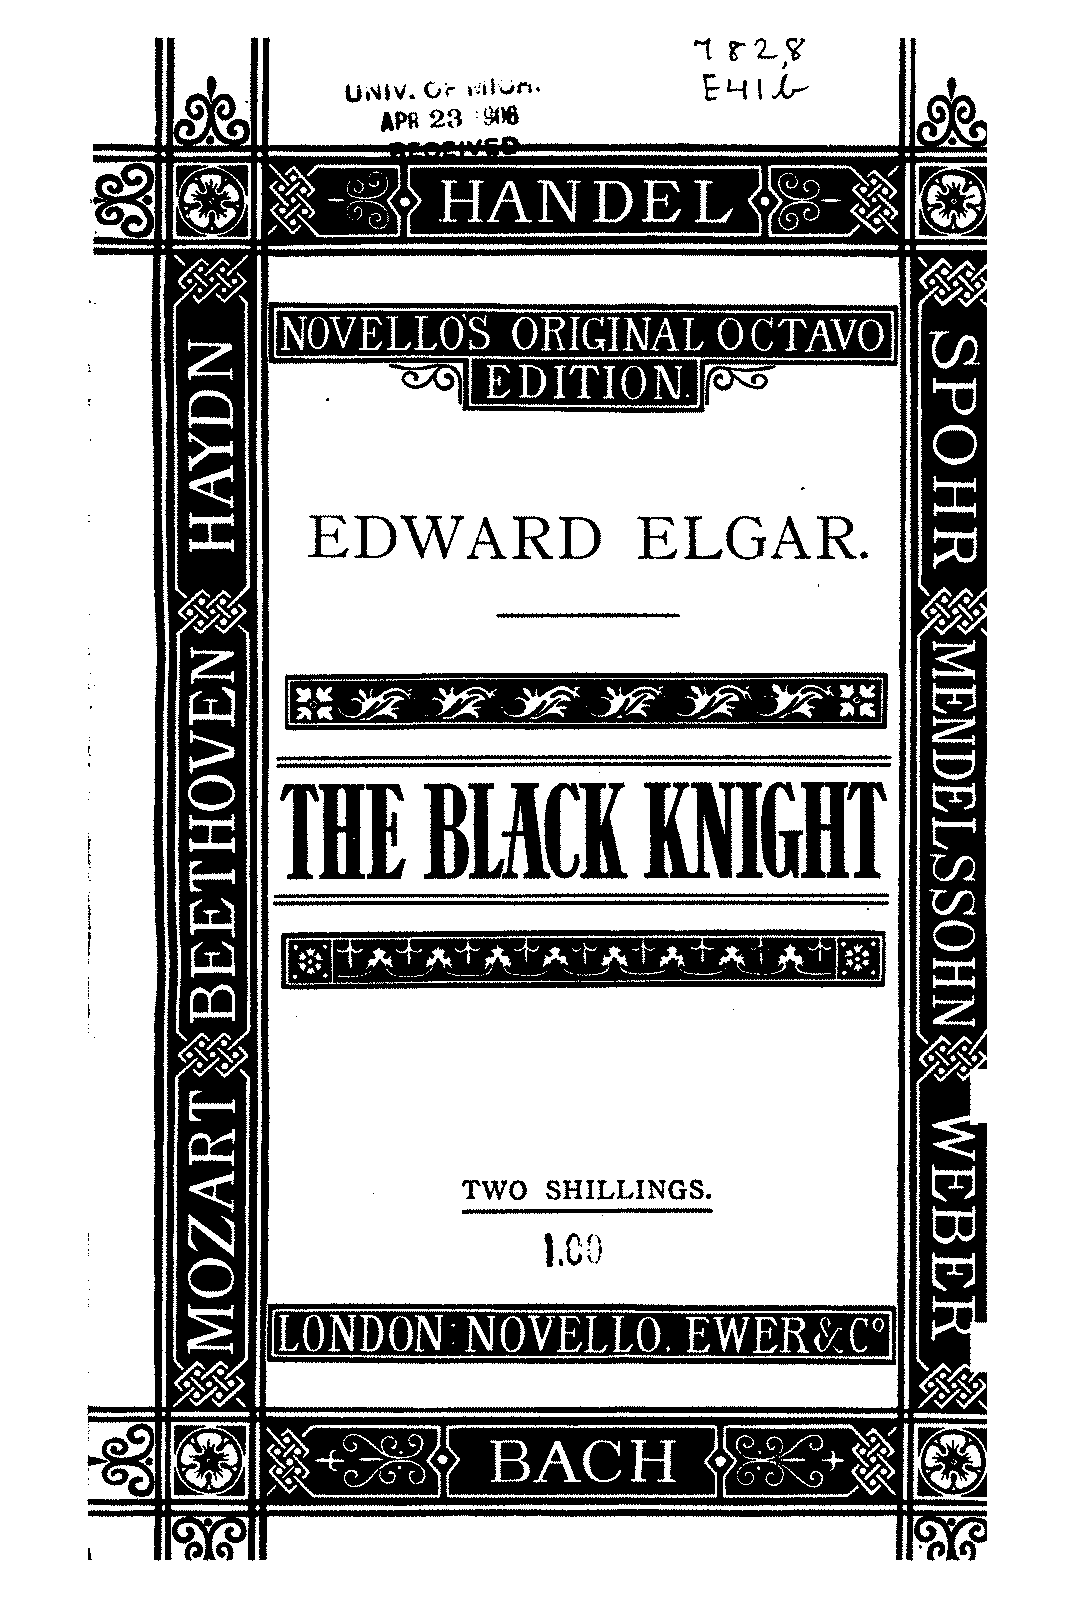 PMLP54529-Elgar - The Black Knight.pdf